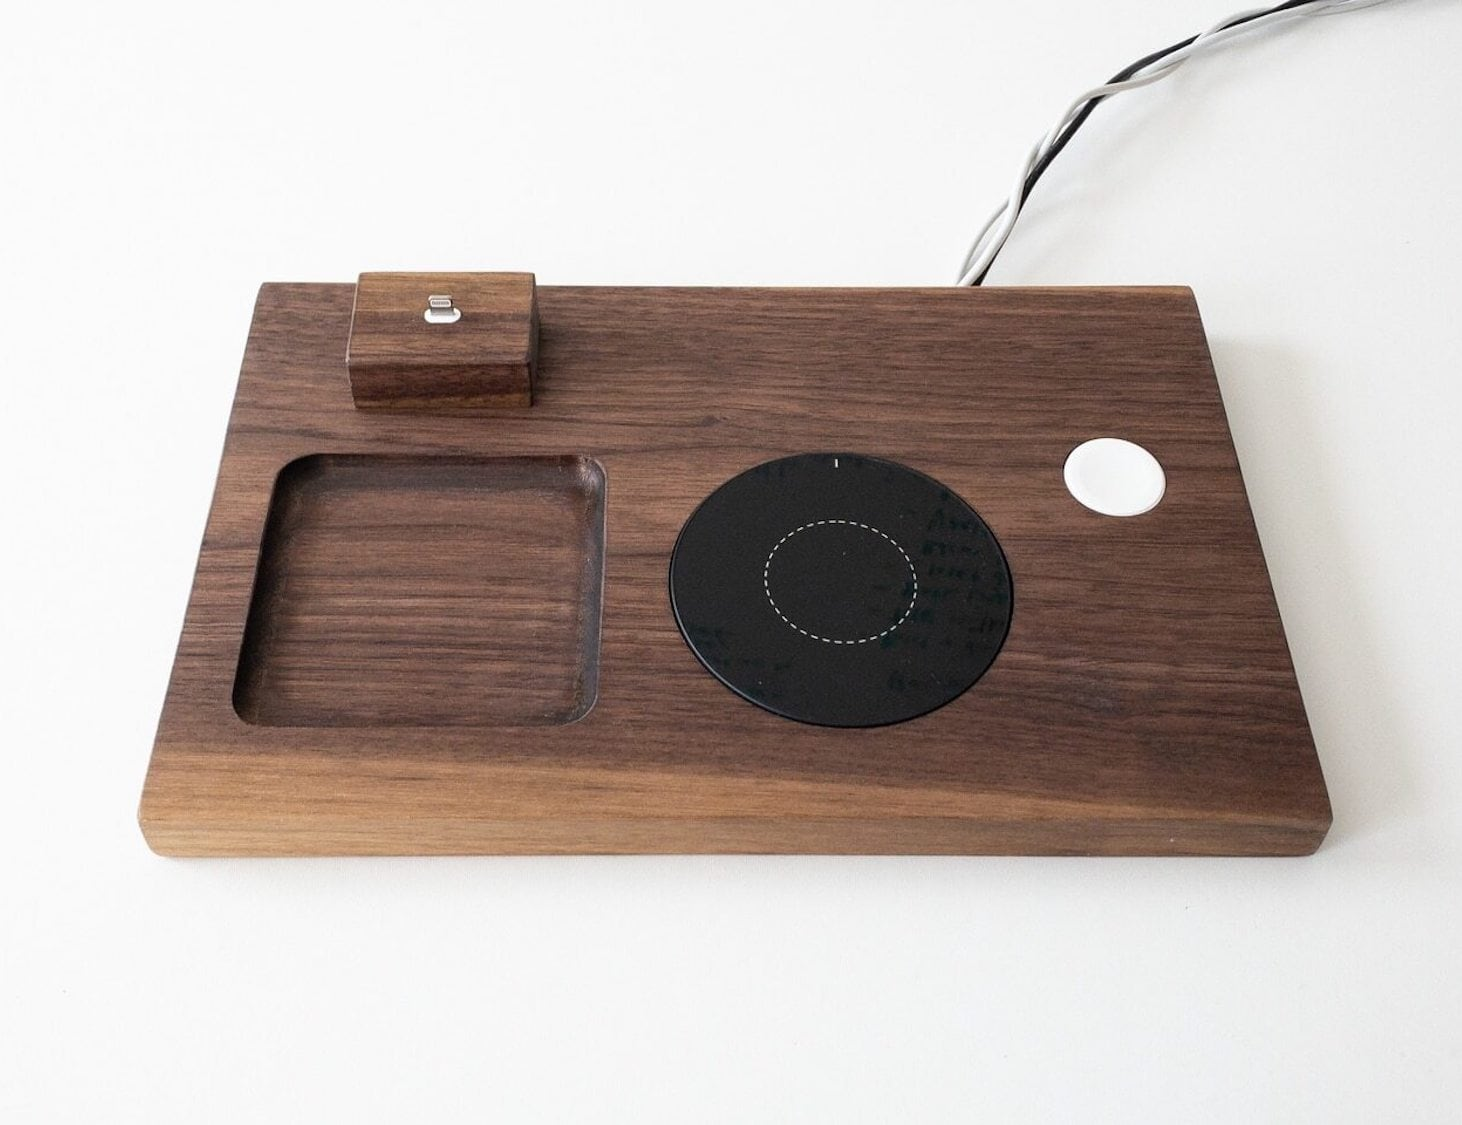 Loma Living Phone and Watch Device Docking Station is an excellent addition to your nightstand